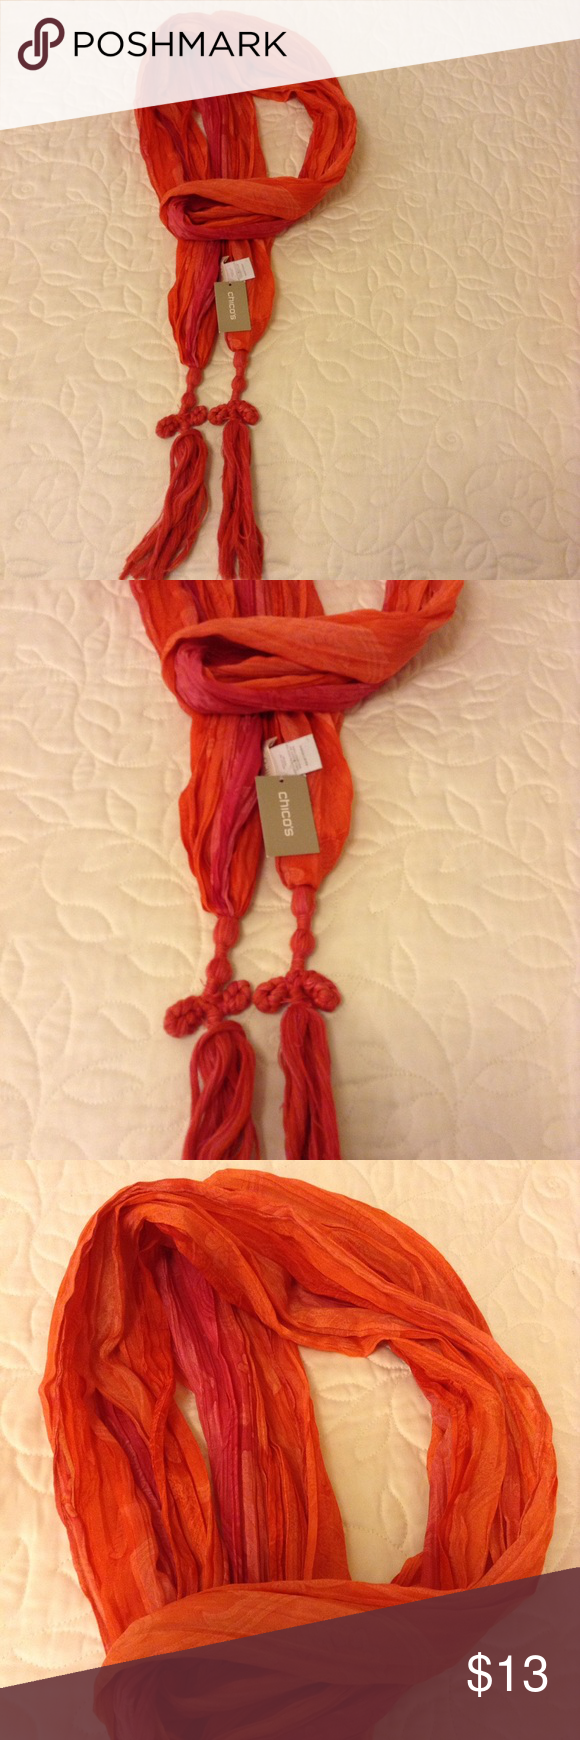 Brand New Chico's Scarf Made in India, vivid colors, never been used. Chico's Accessories Scarves & Wraps